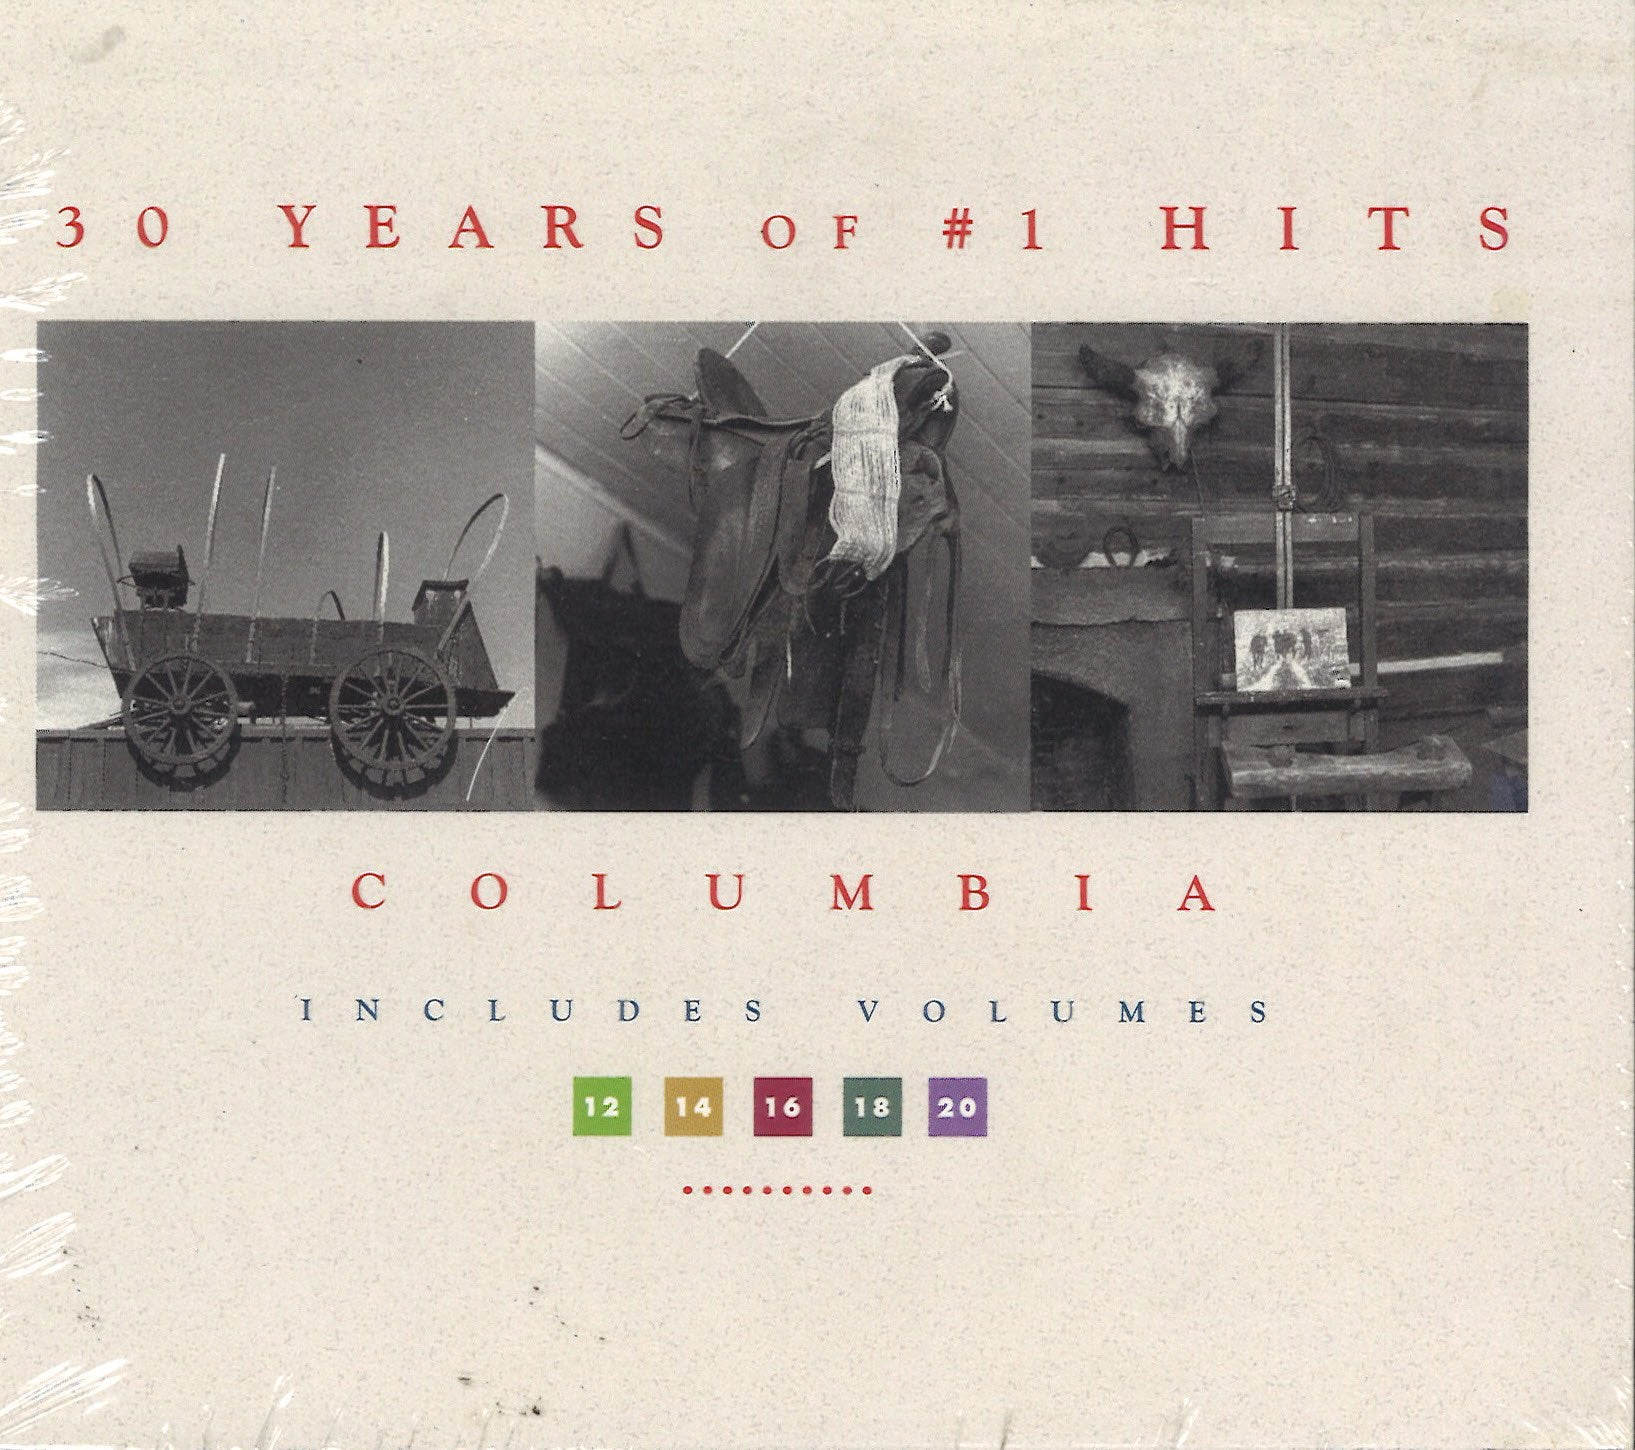 Various Artists 30 Years Of #1 Hits - Vol. 12 14 16 18 20: 5 CD Set